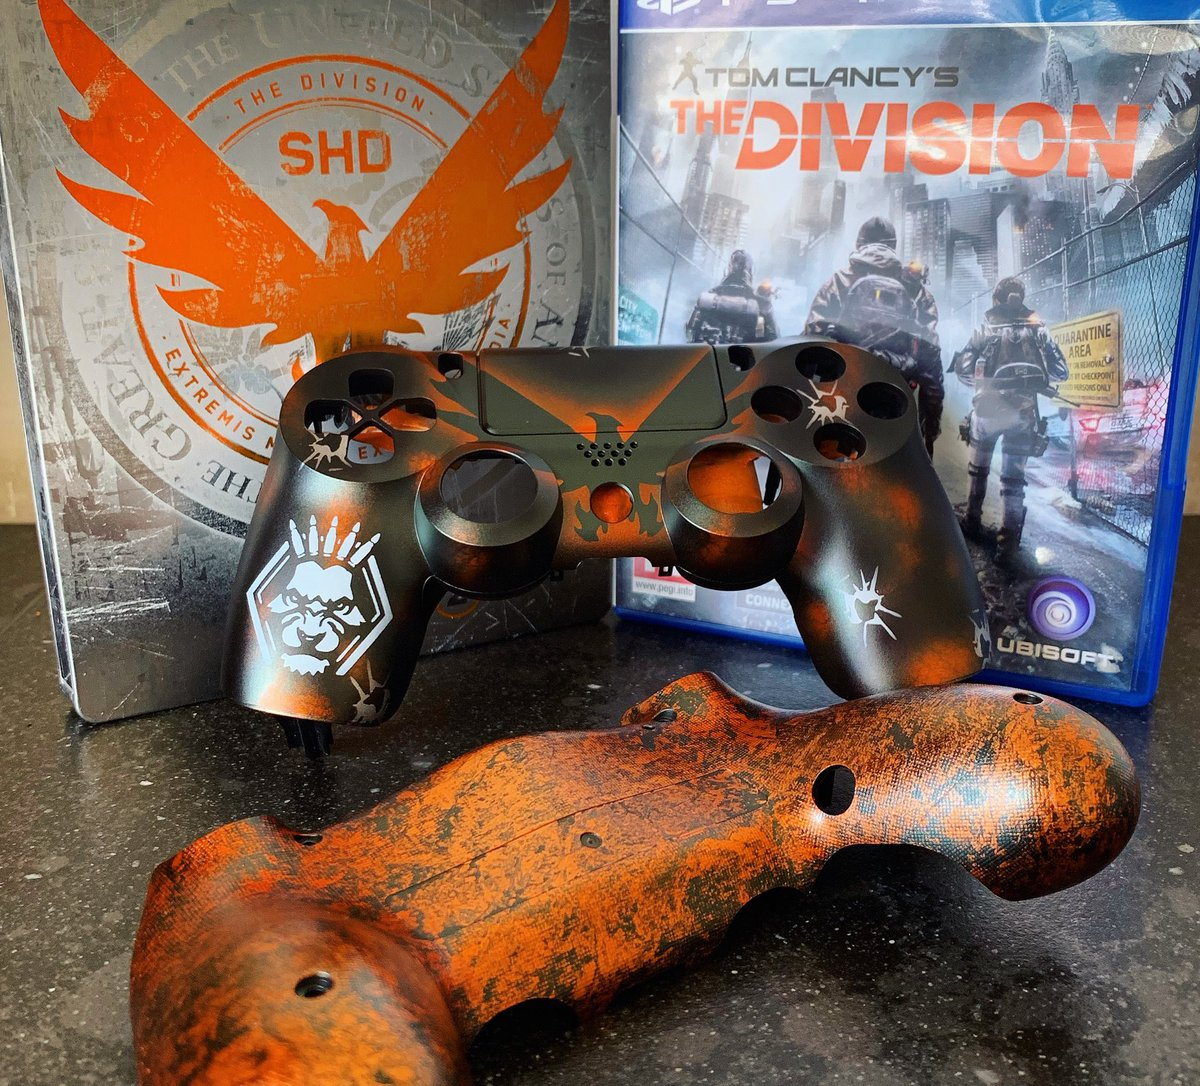 New week has started, new custom work on the way! Division ps4, orange marble effect on the back with the signsture logo on the front in candy orange. #Division2<br>http://pic.twitter.com/RueJMG5UKV